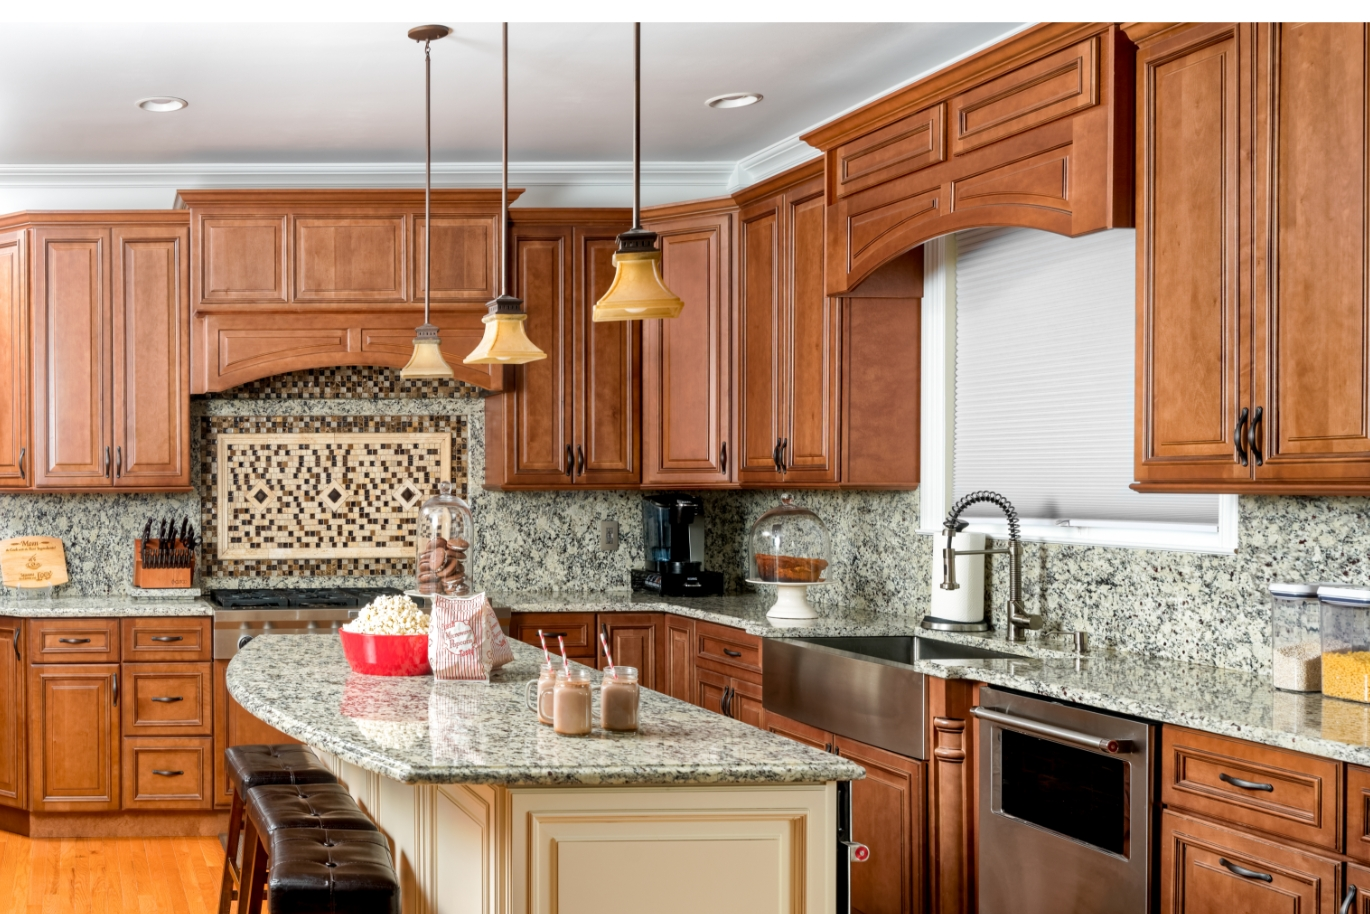 Traditional Kitchens With White Cabinets Traditional Kitchen Cabinets Best Selection In Ny Shop Top Products